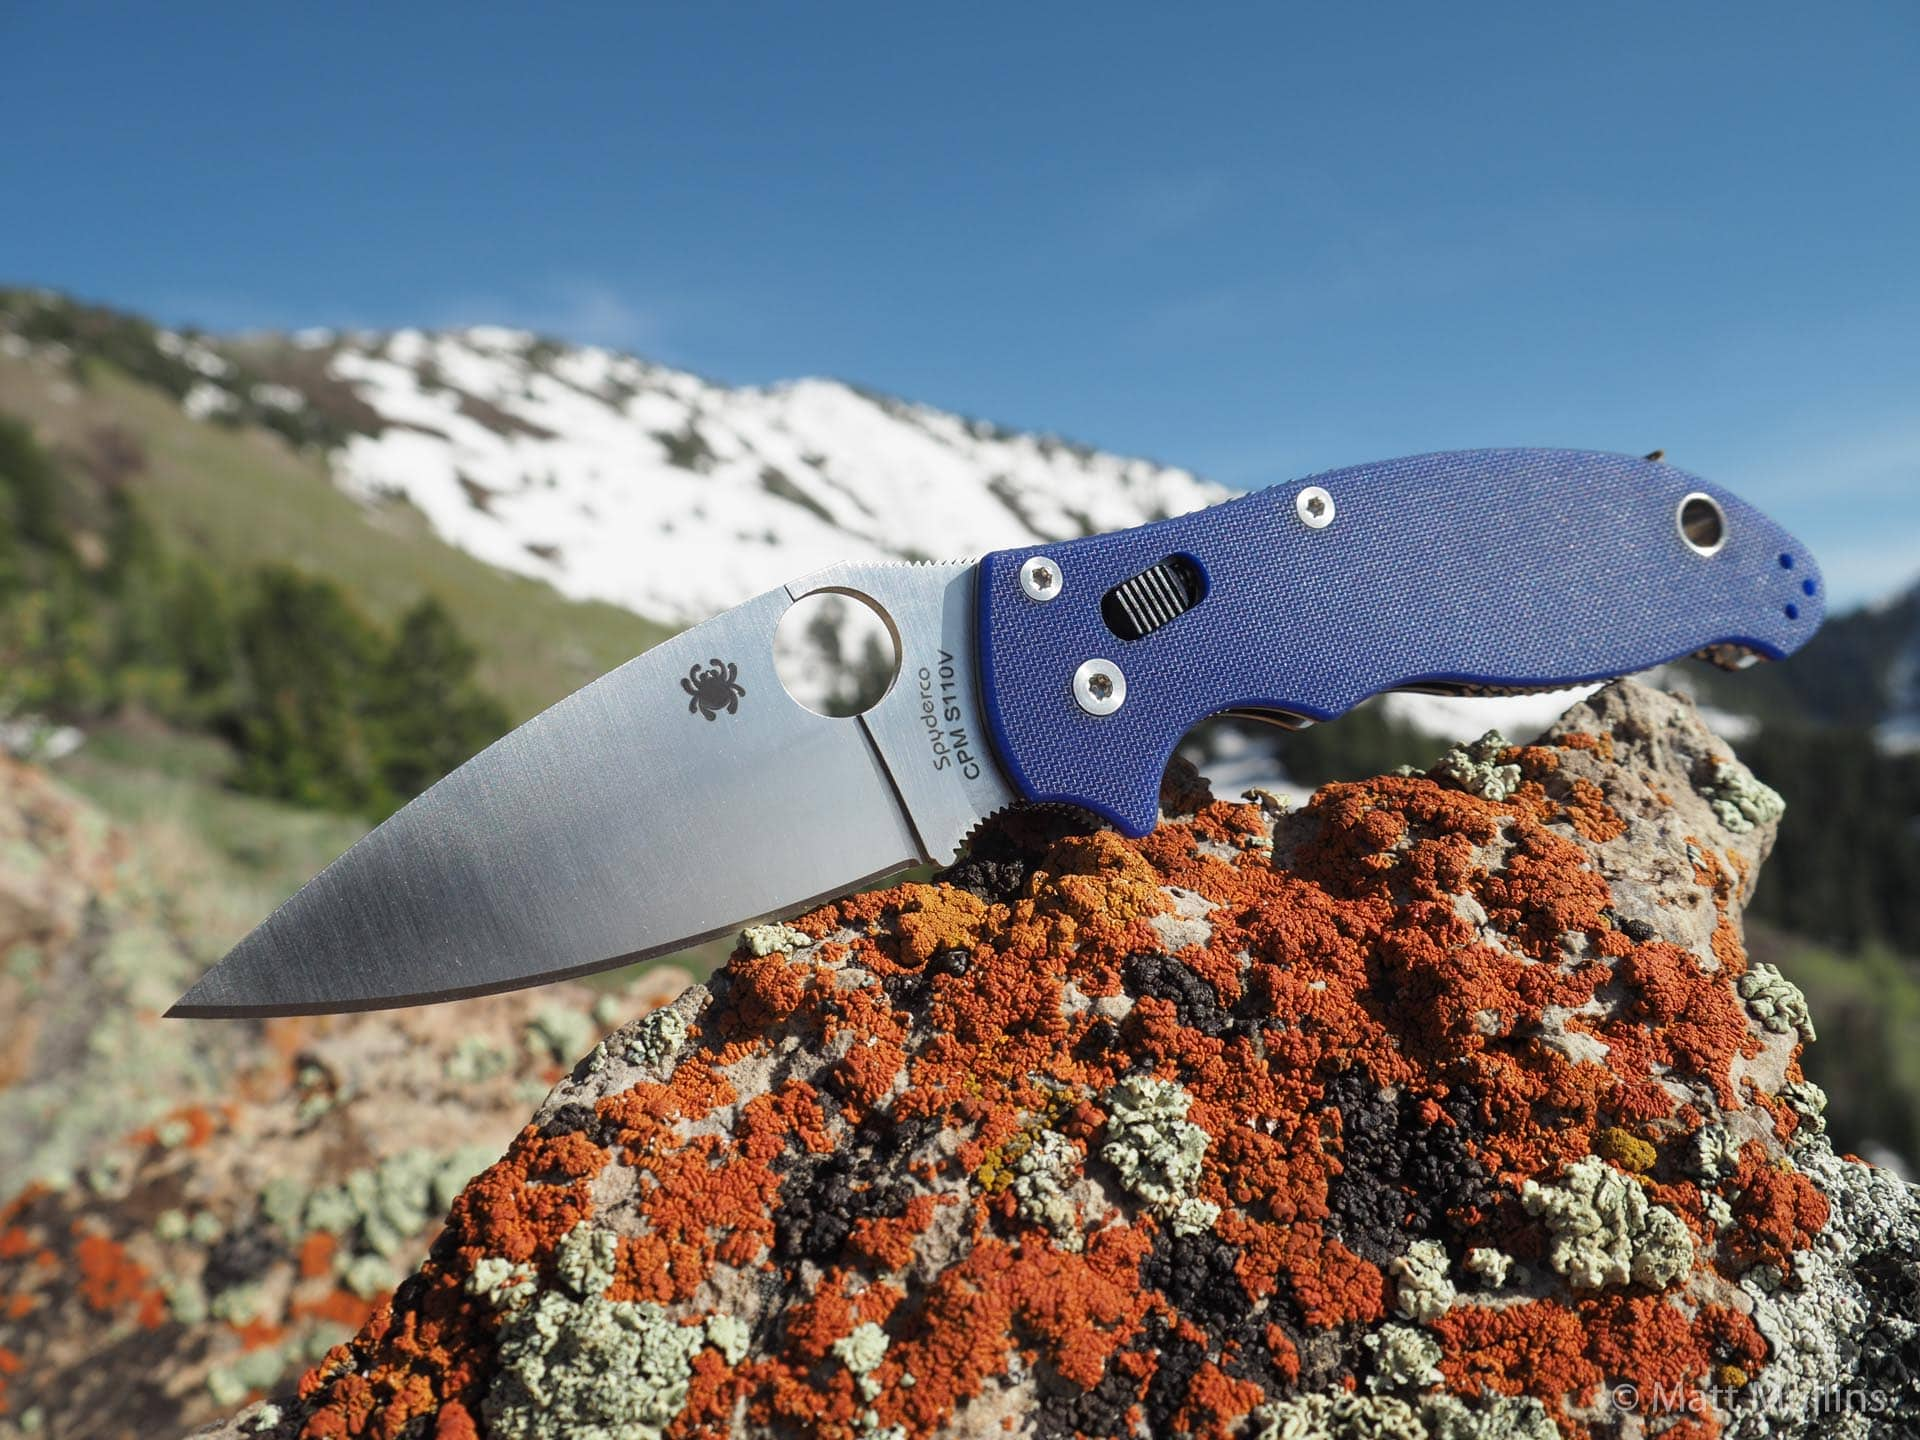 Spyderco Manix 2 Knife in the Wasatch Mtns